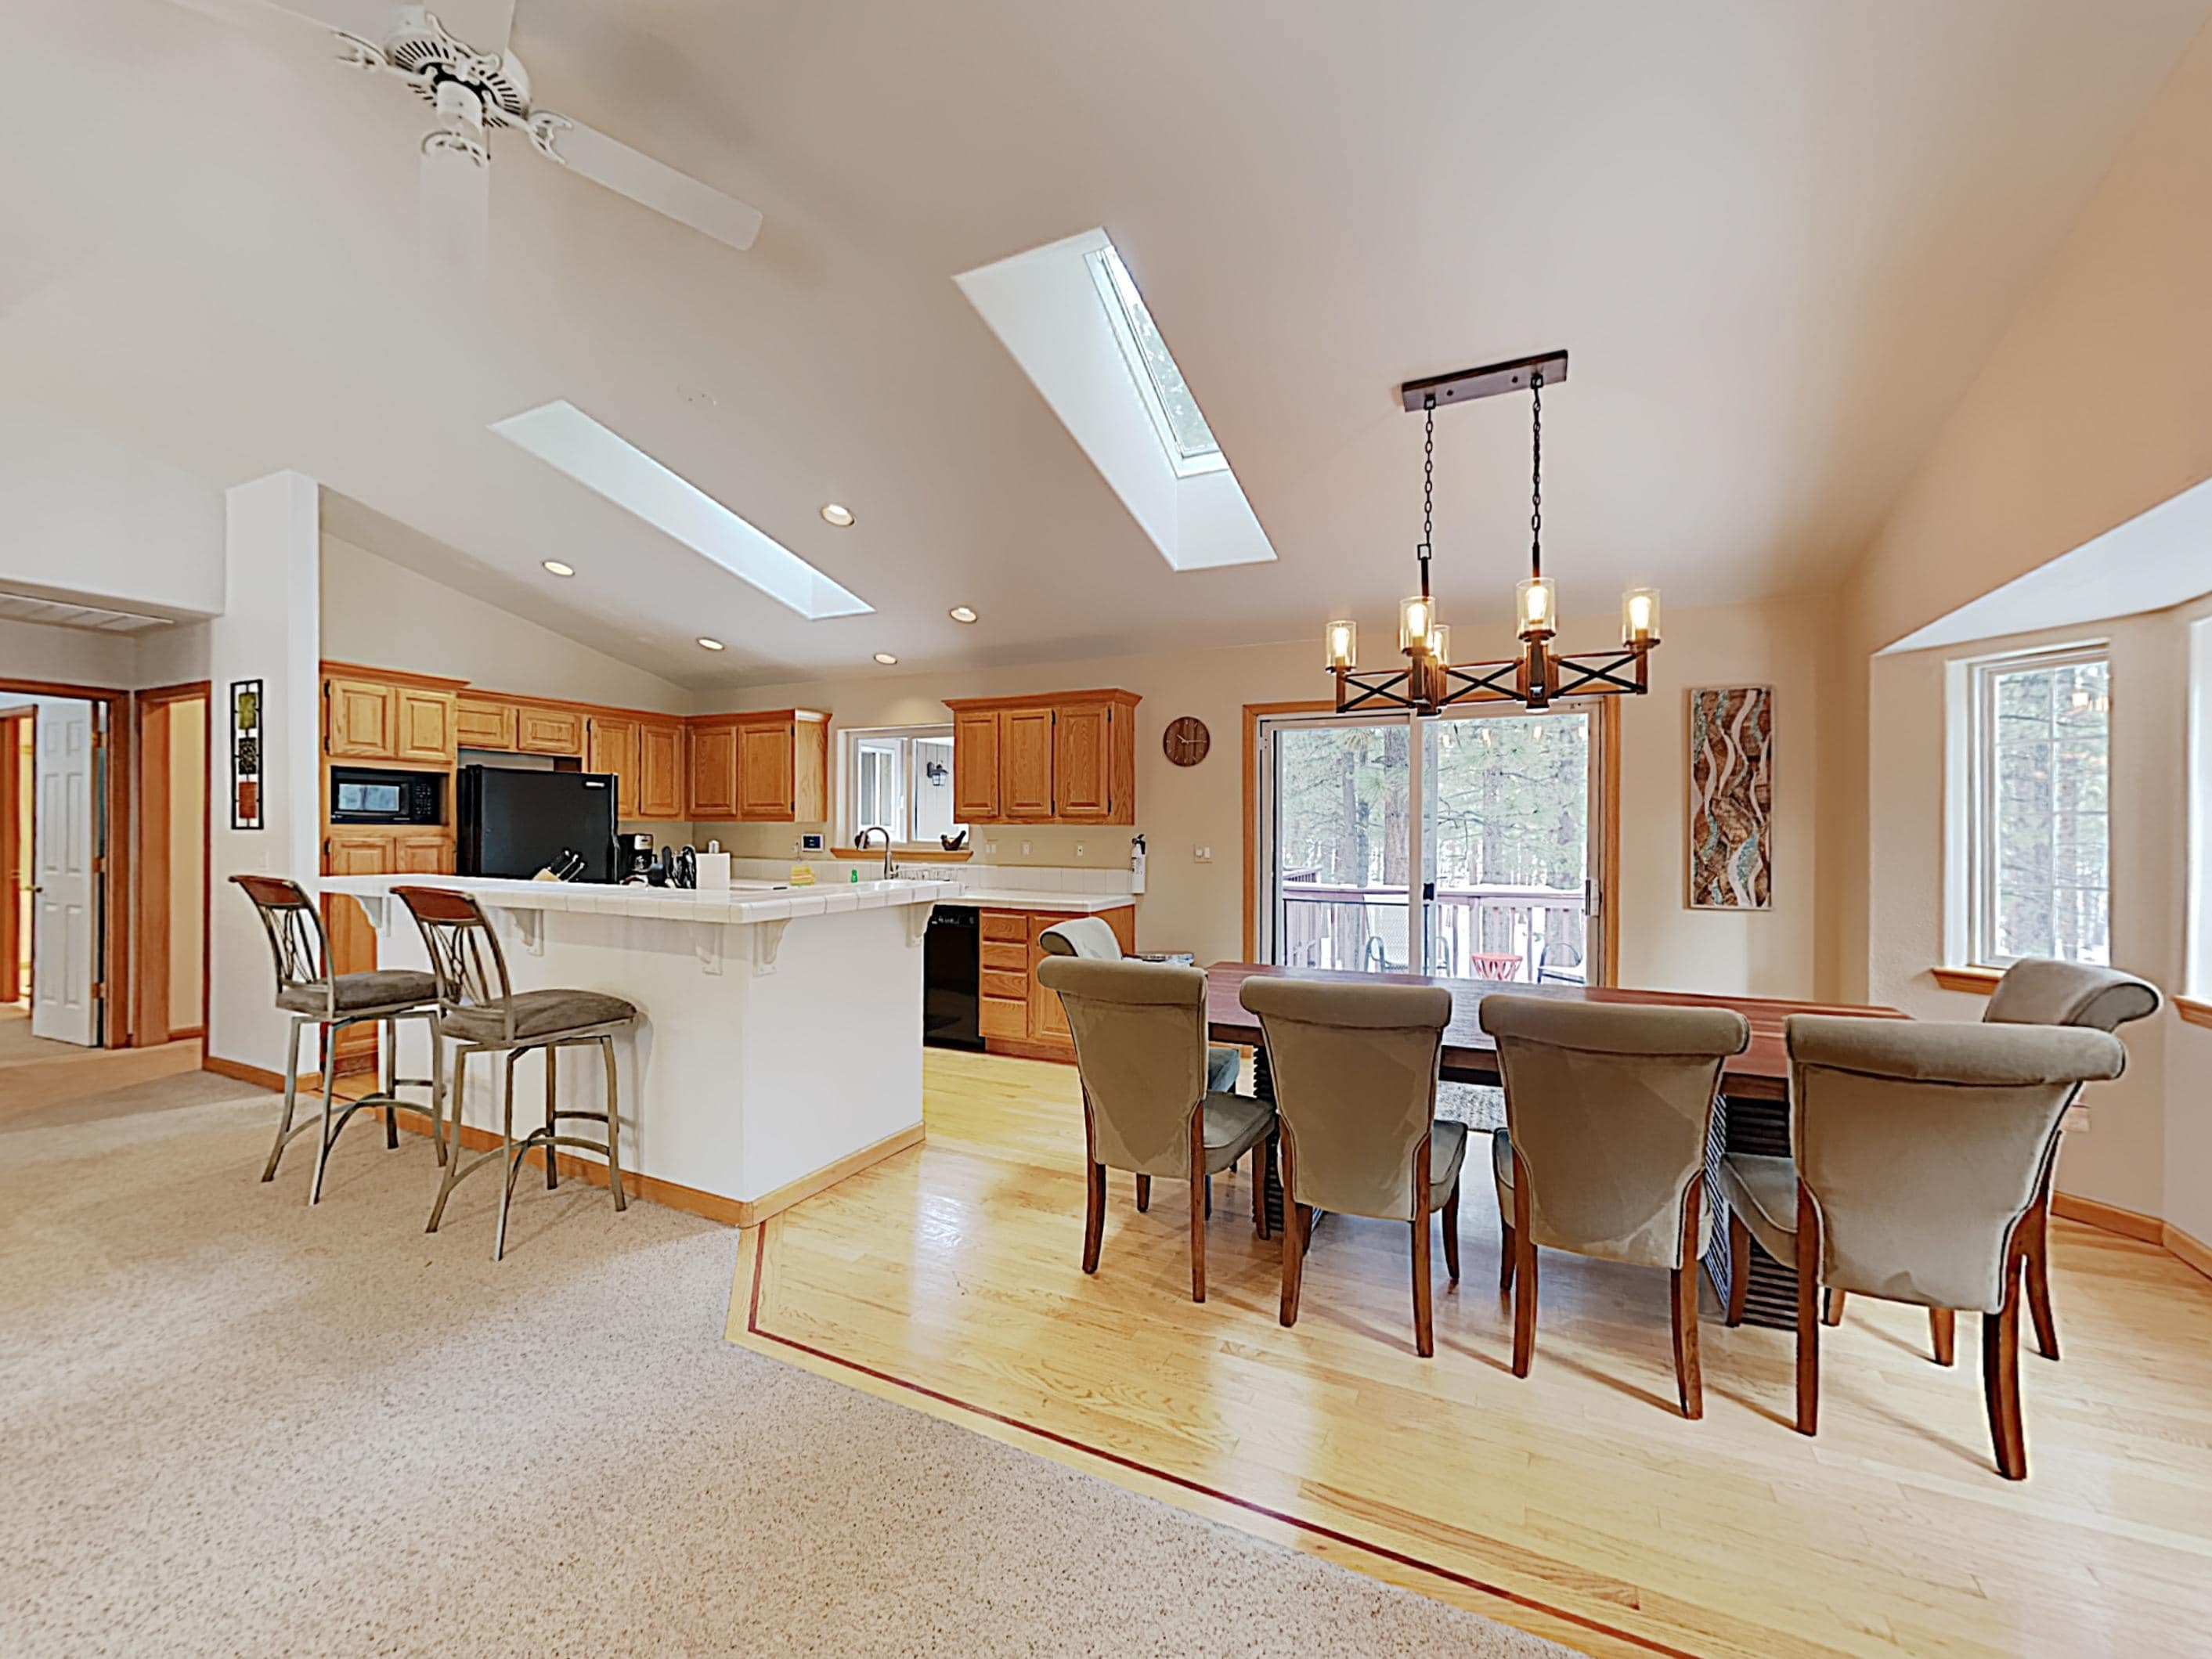 ,The open kitchen and dining space offers a great flow for entertaining.